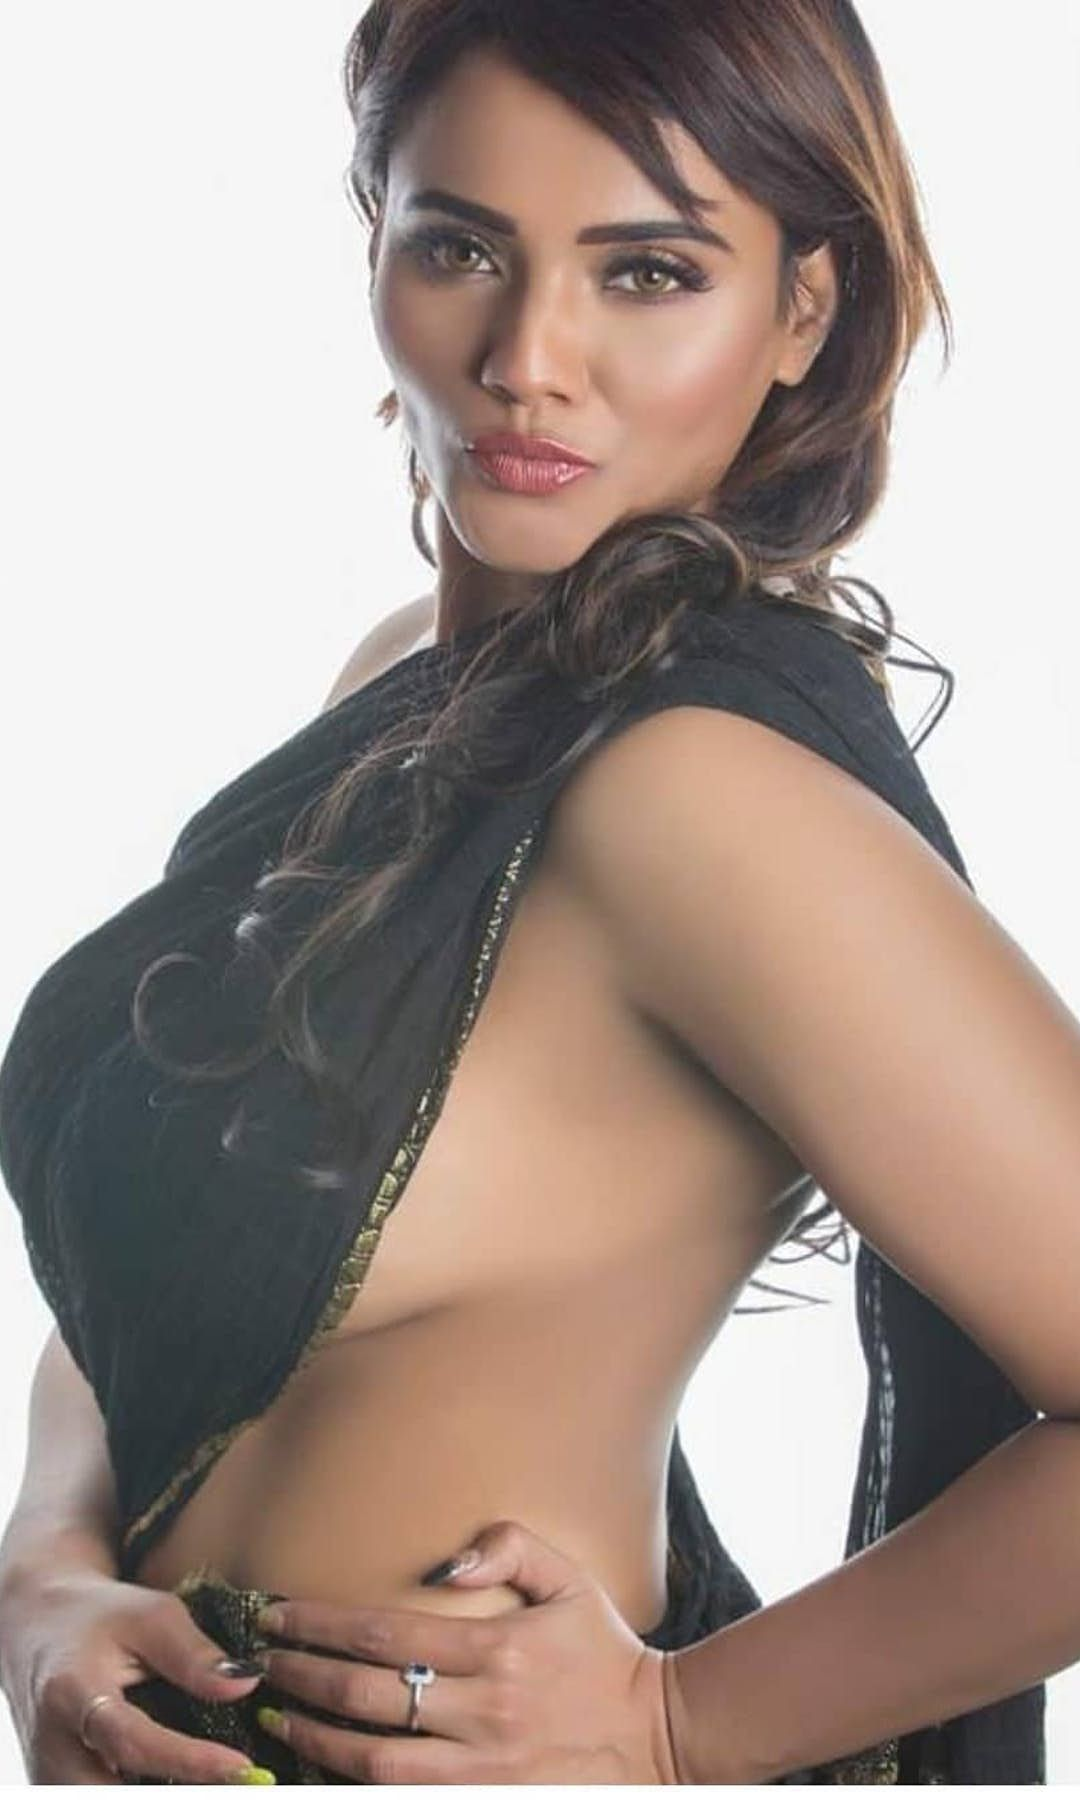 Sultry Diljot from Chandigarh Escorts will pep up your sex lives